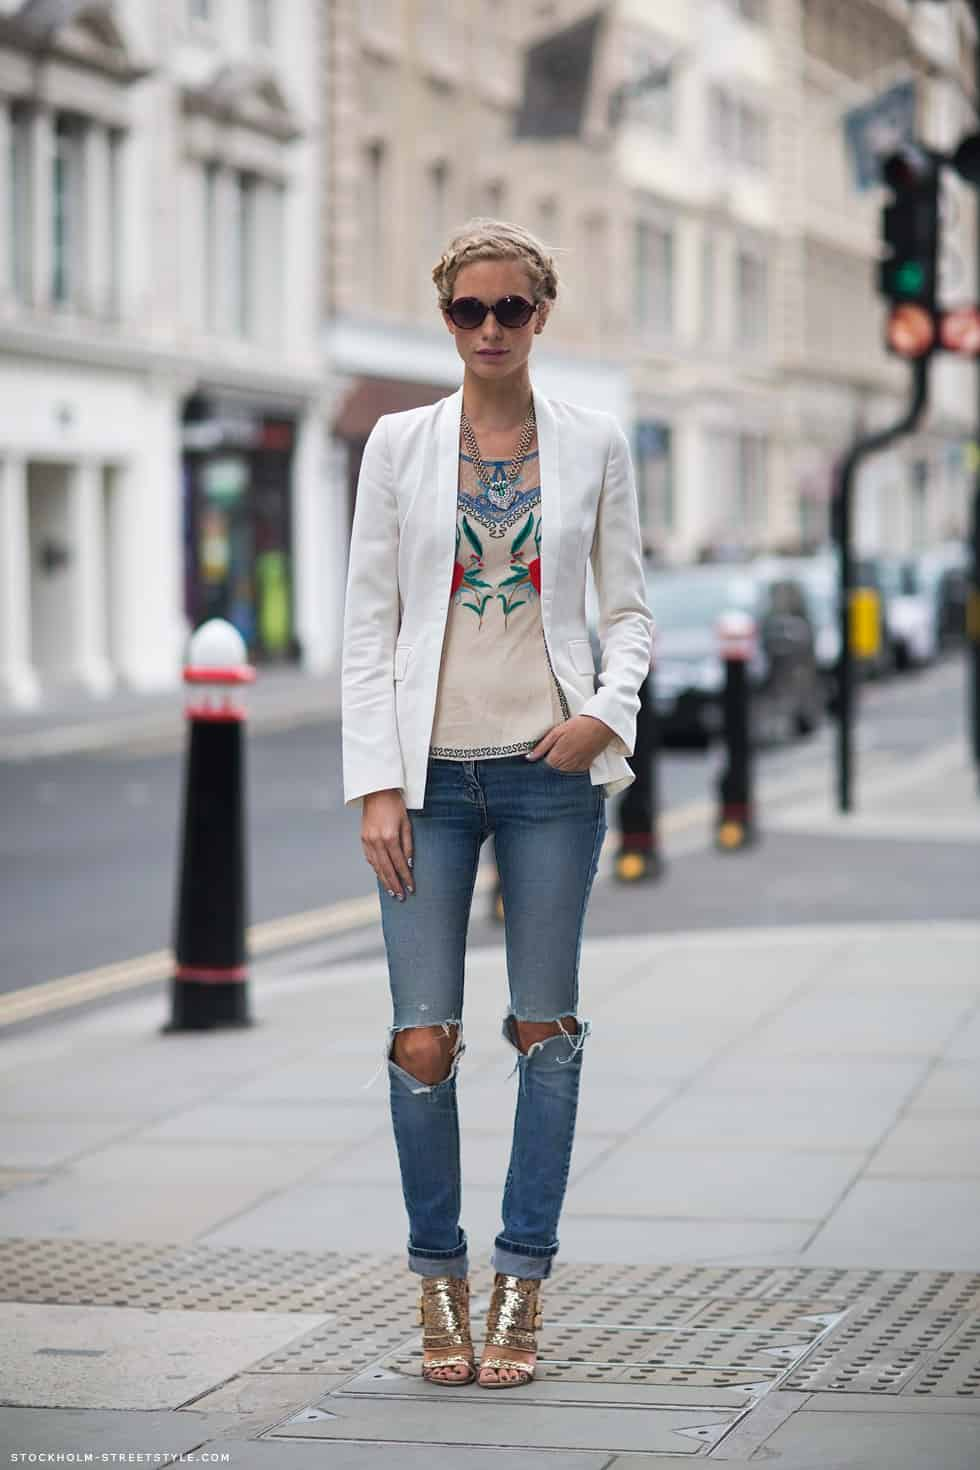 Street Style; Who Won Fashion Today? Look Your Best; Video; Subscribe; Give a Gift; Get our Newsletter; Stay Connected. Home › Fashion › Clothing › The Ultimate Jeans Guide. sashimicraft.ga